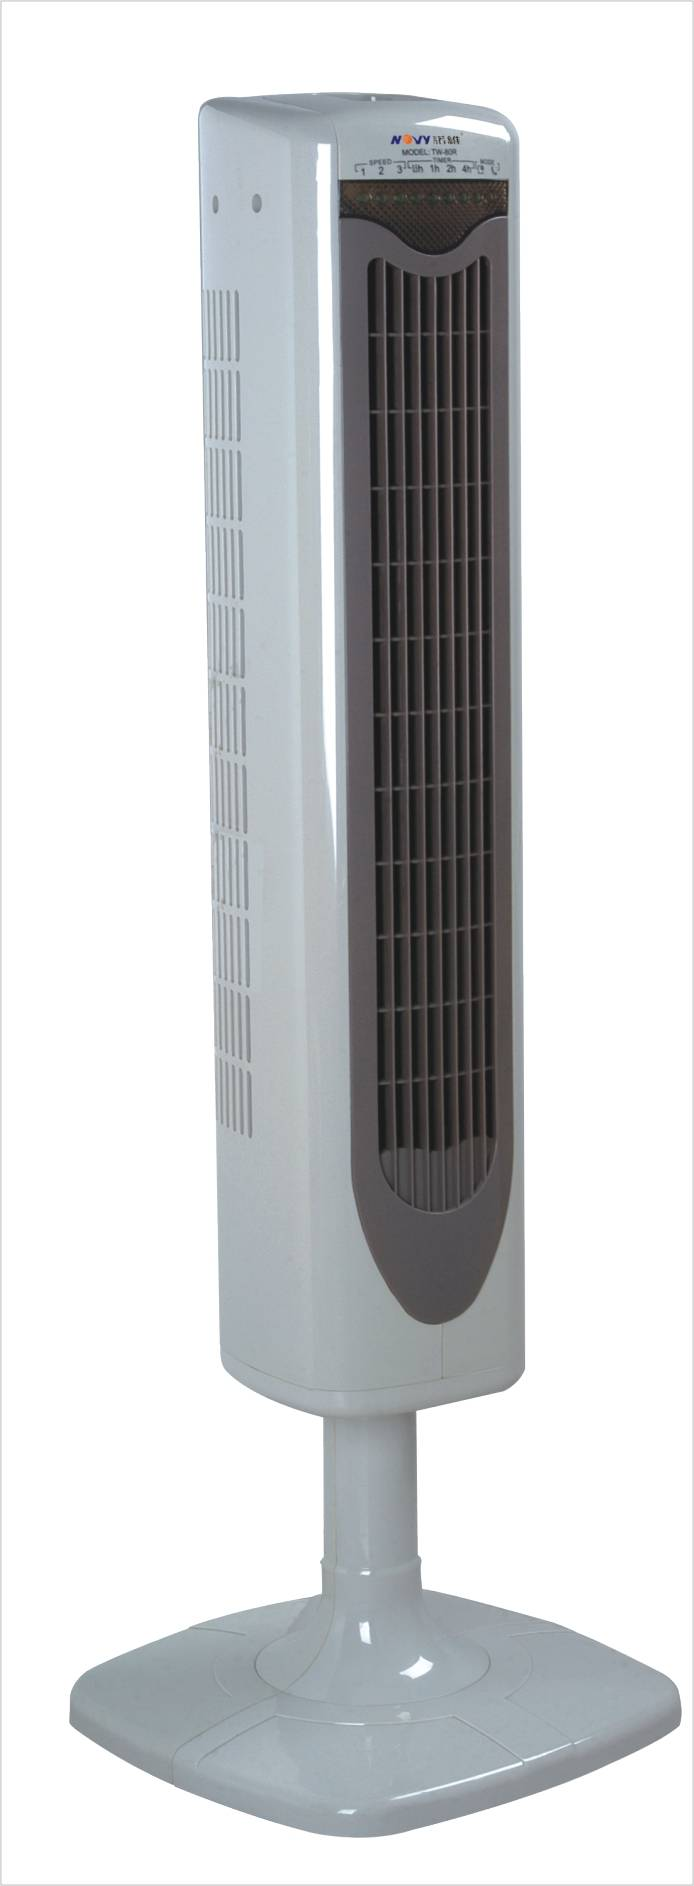 DS-50AC Tower fan with remote control